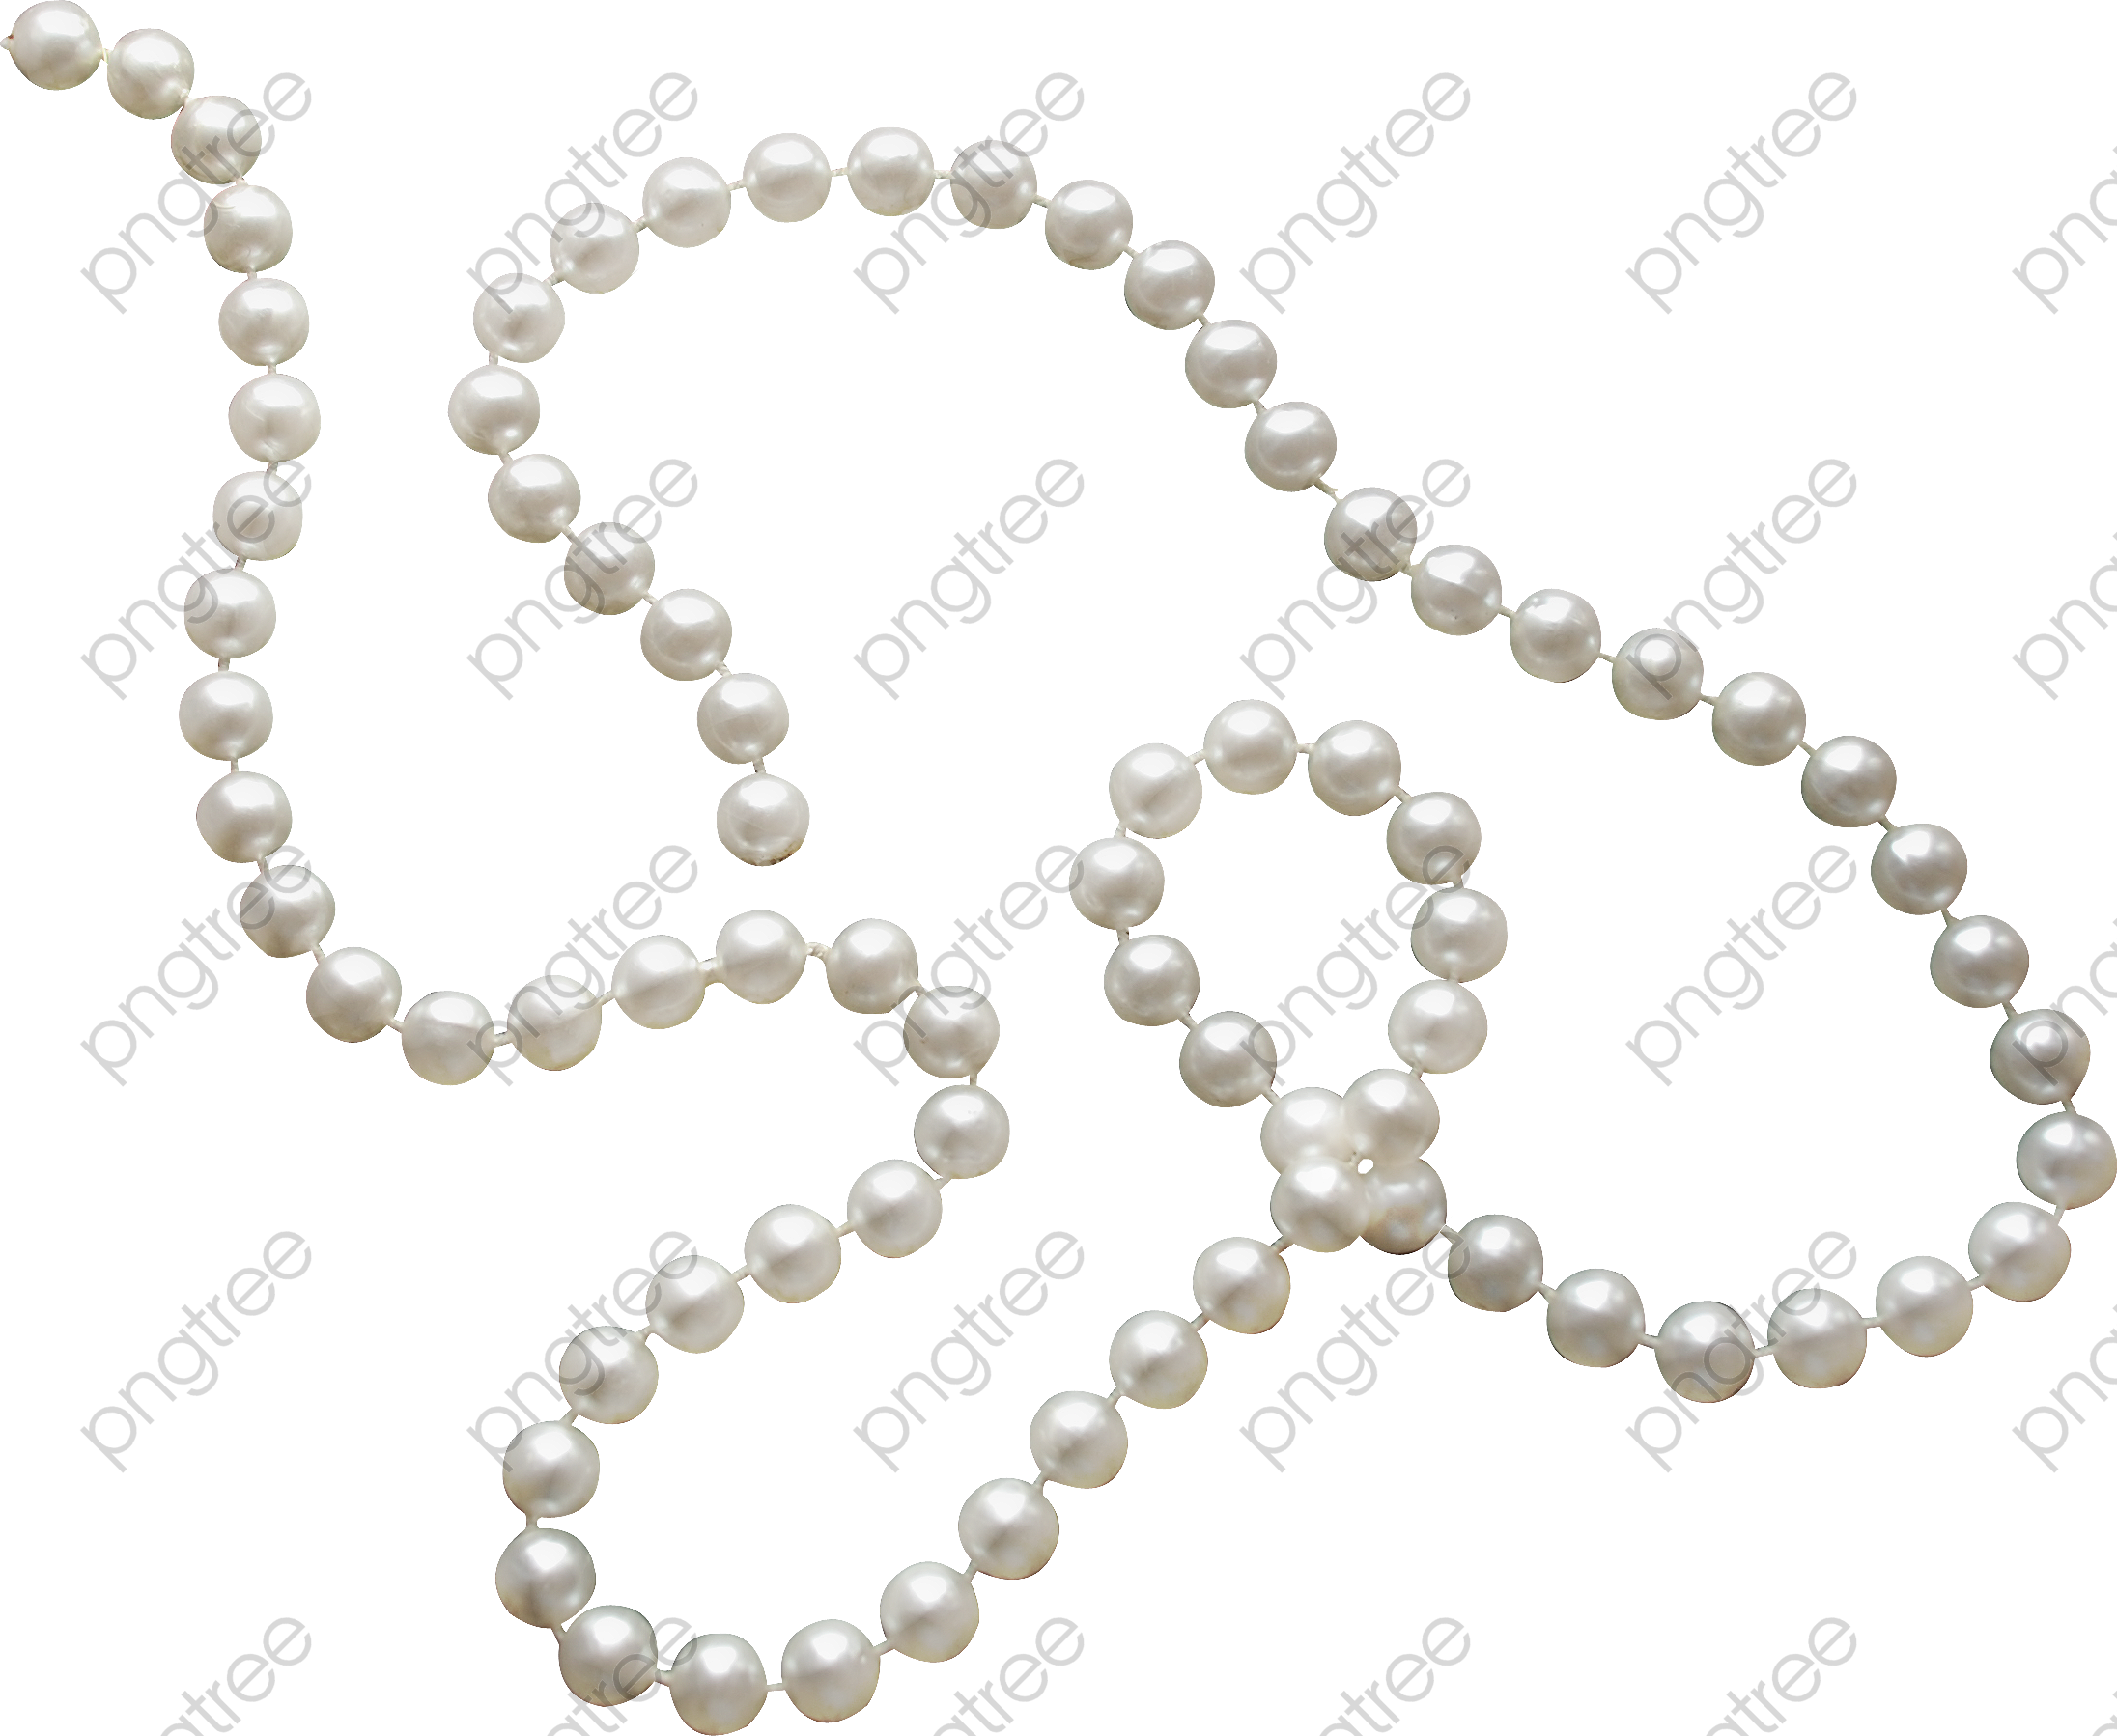 transparent white pearl necklace png format image with size 2192 1798 preview page